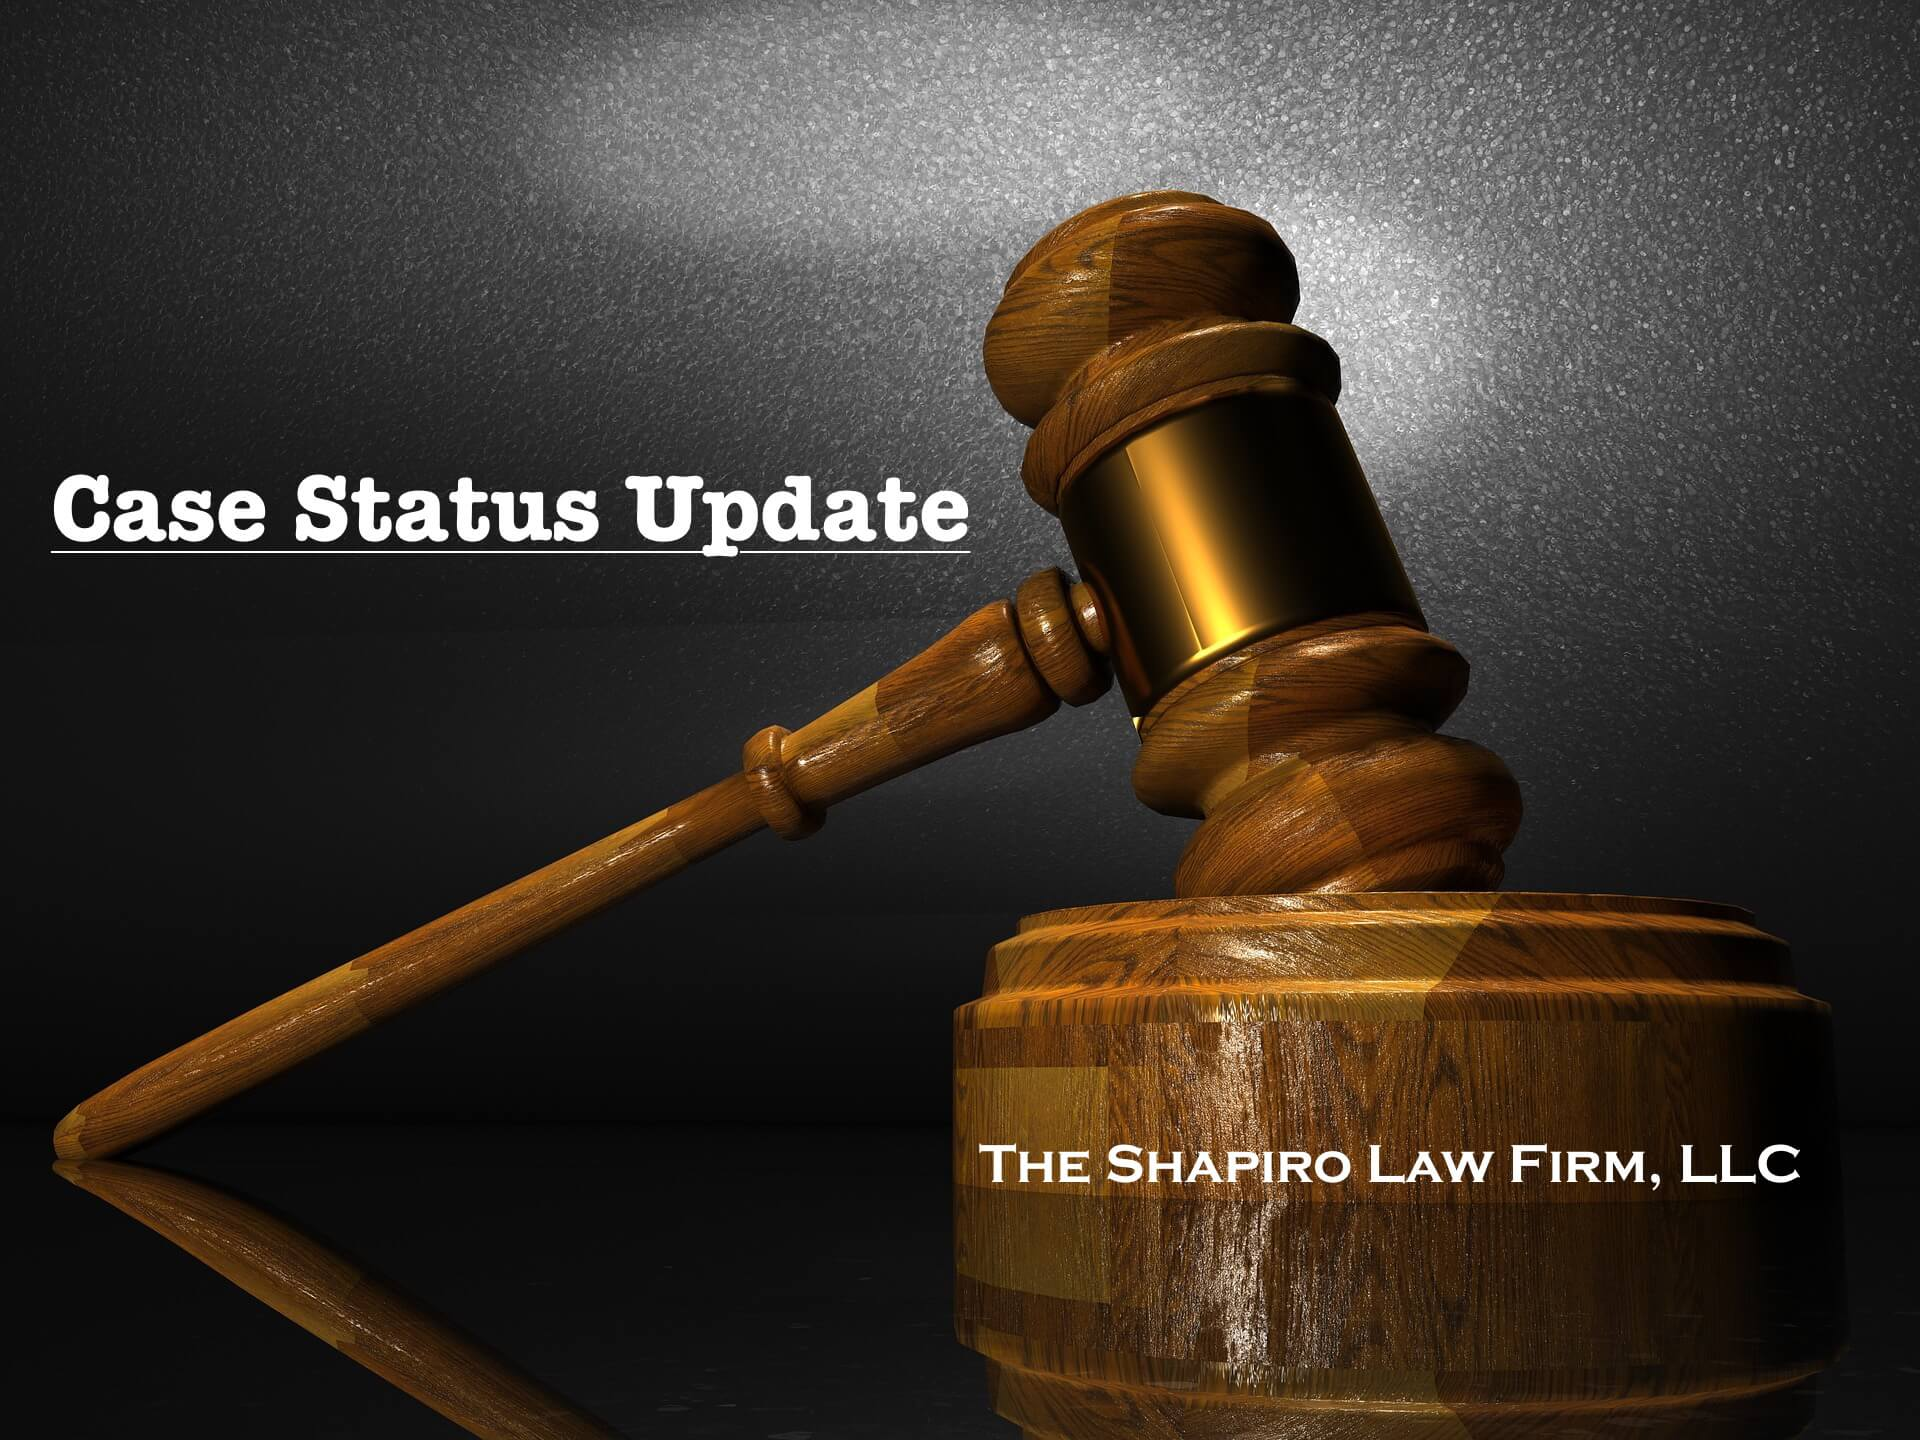 Case Status Update | The Shapiro Law Firm, LLC